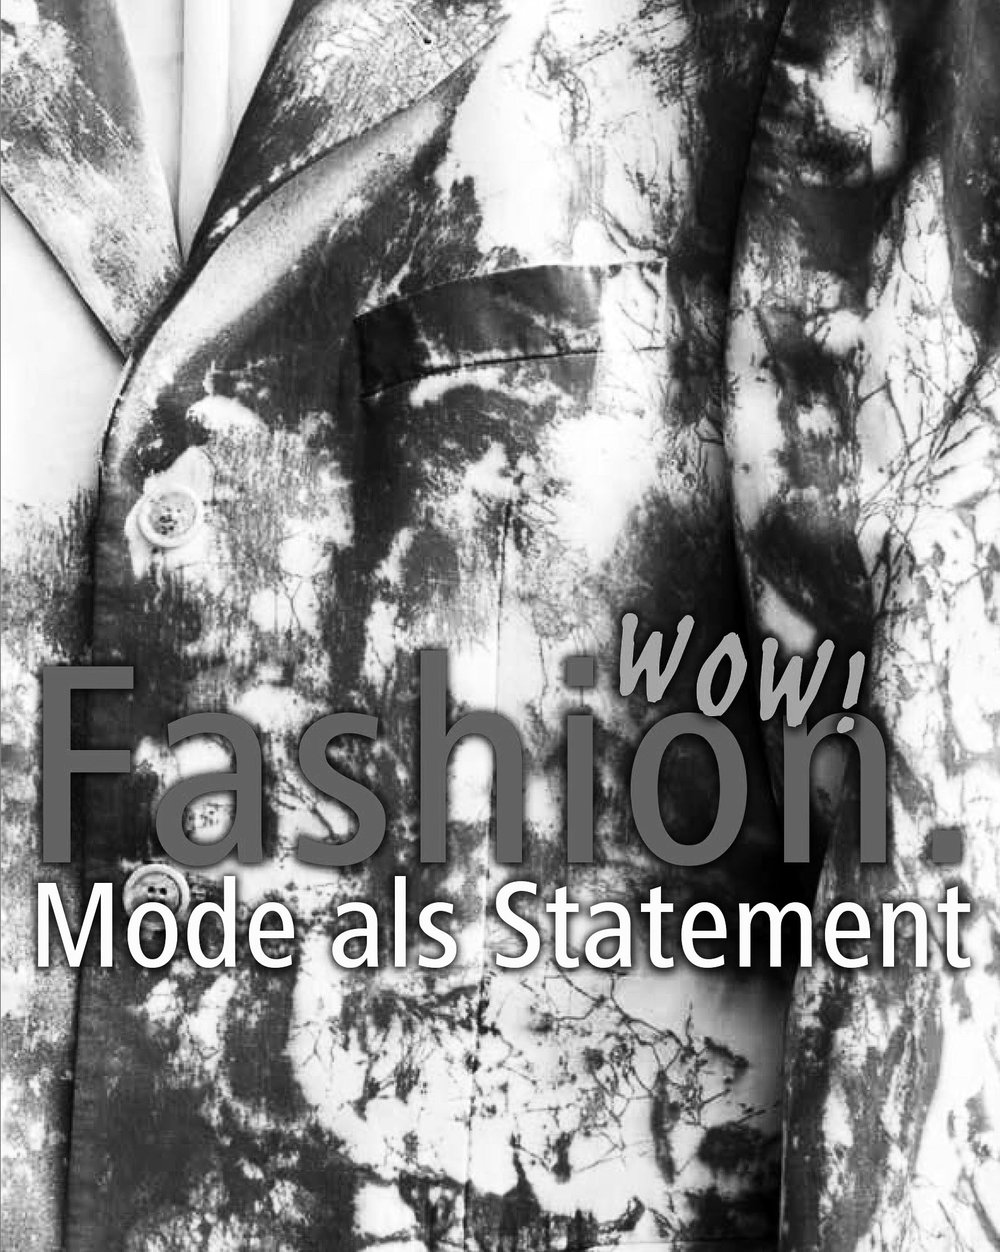 Fashion as statement - EventsOpening15. June 2018 - 19:00Duration15. June 2018 - 08. September 2018Galerie Freihausgasse, Galerie der Stadt Vilach, 9500 Villachhttp://www.dieangewandte.at/en/news/exhibitions/detail…